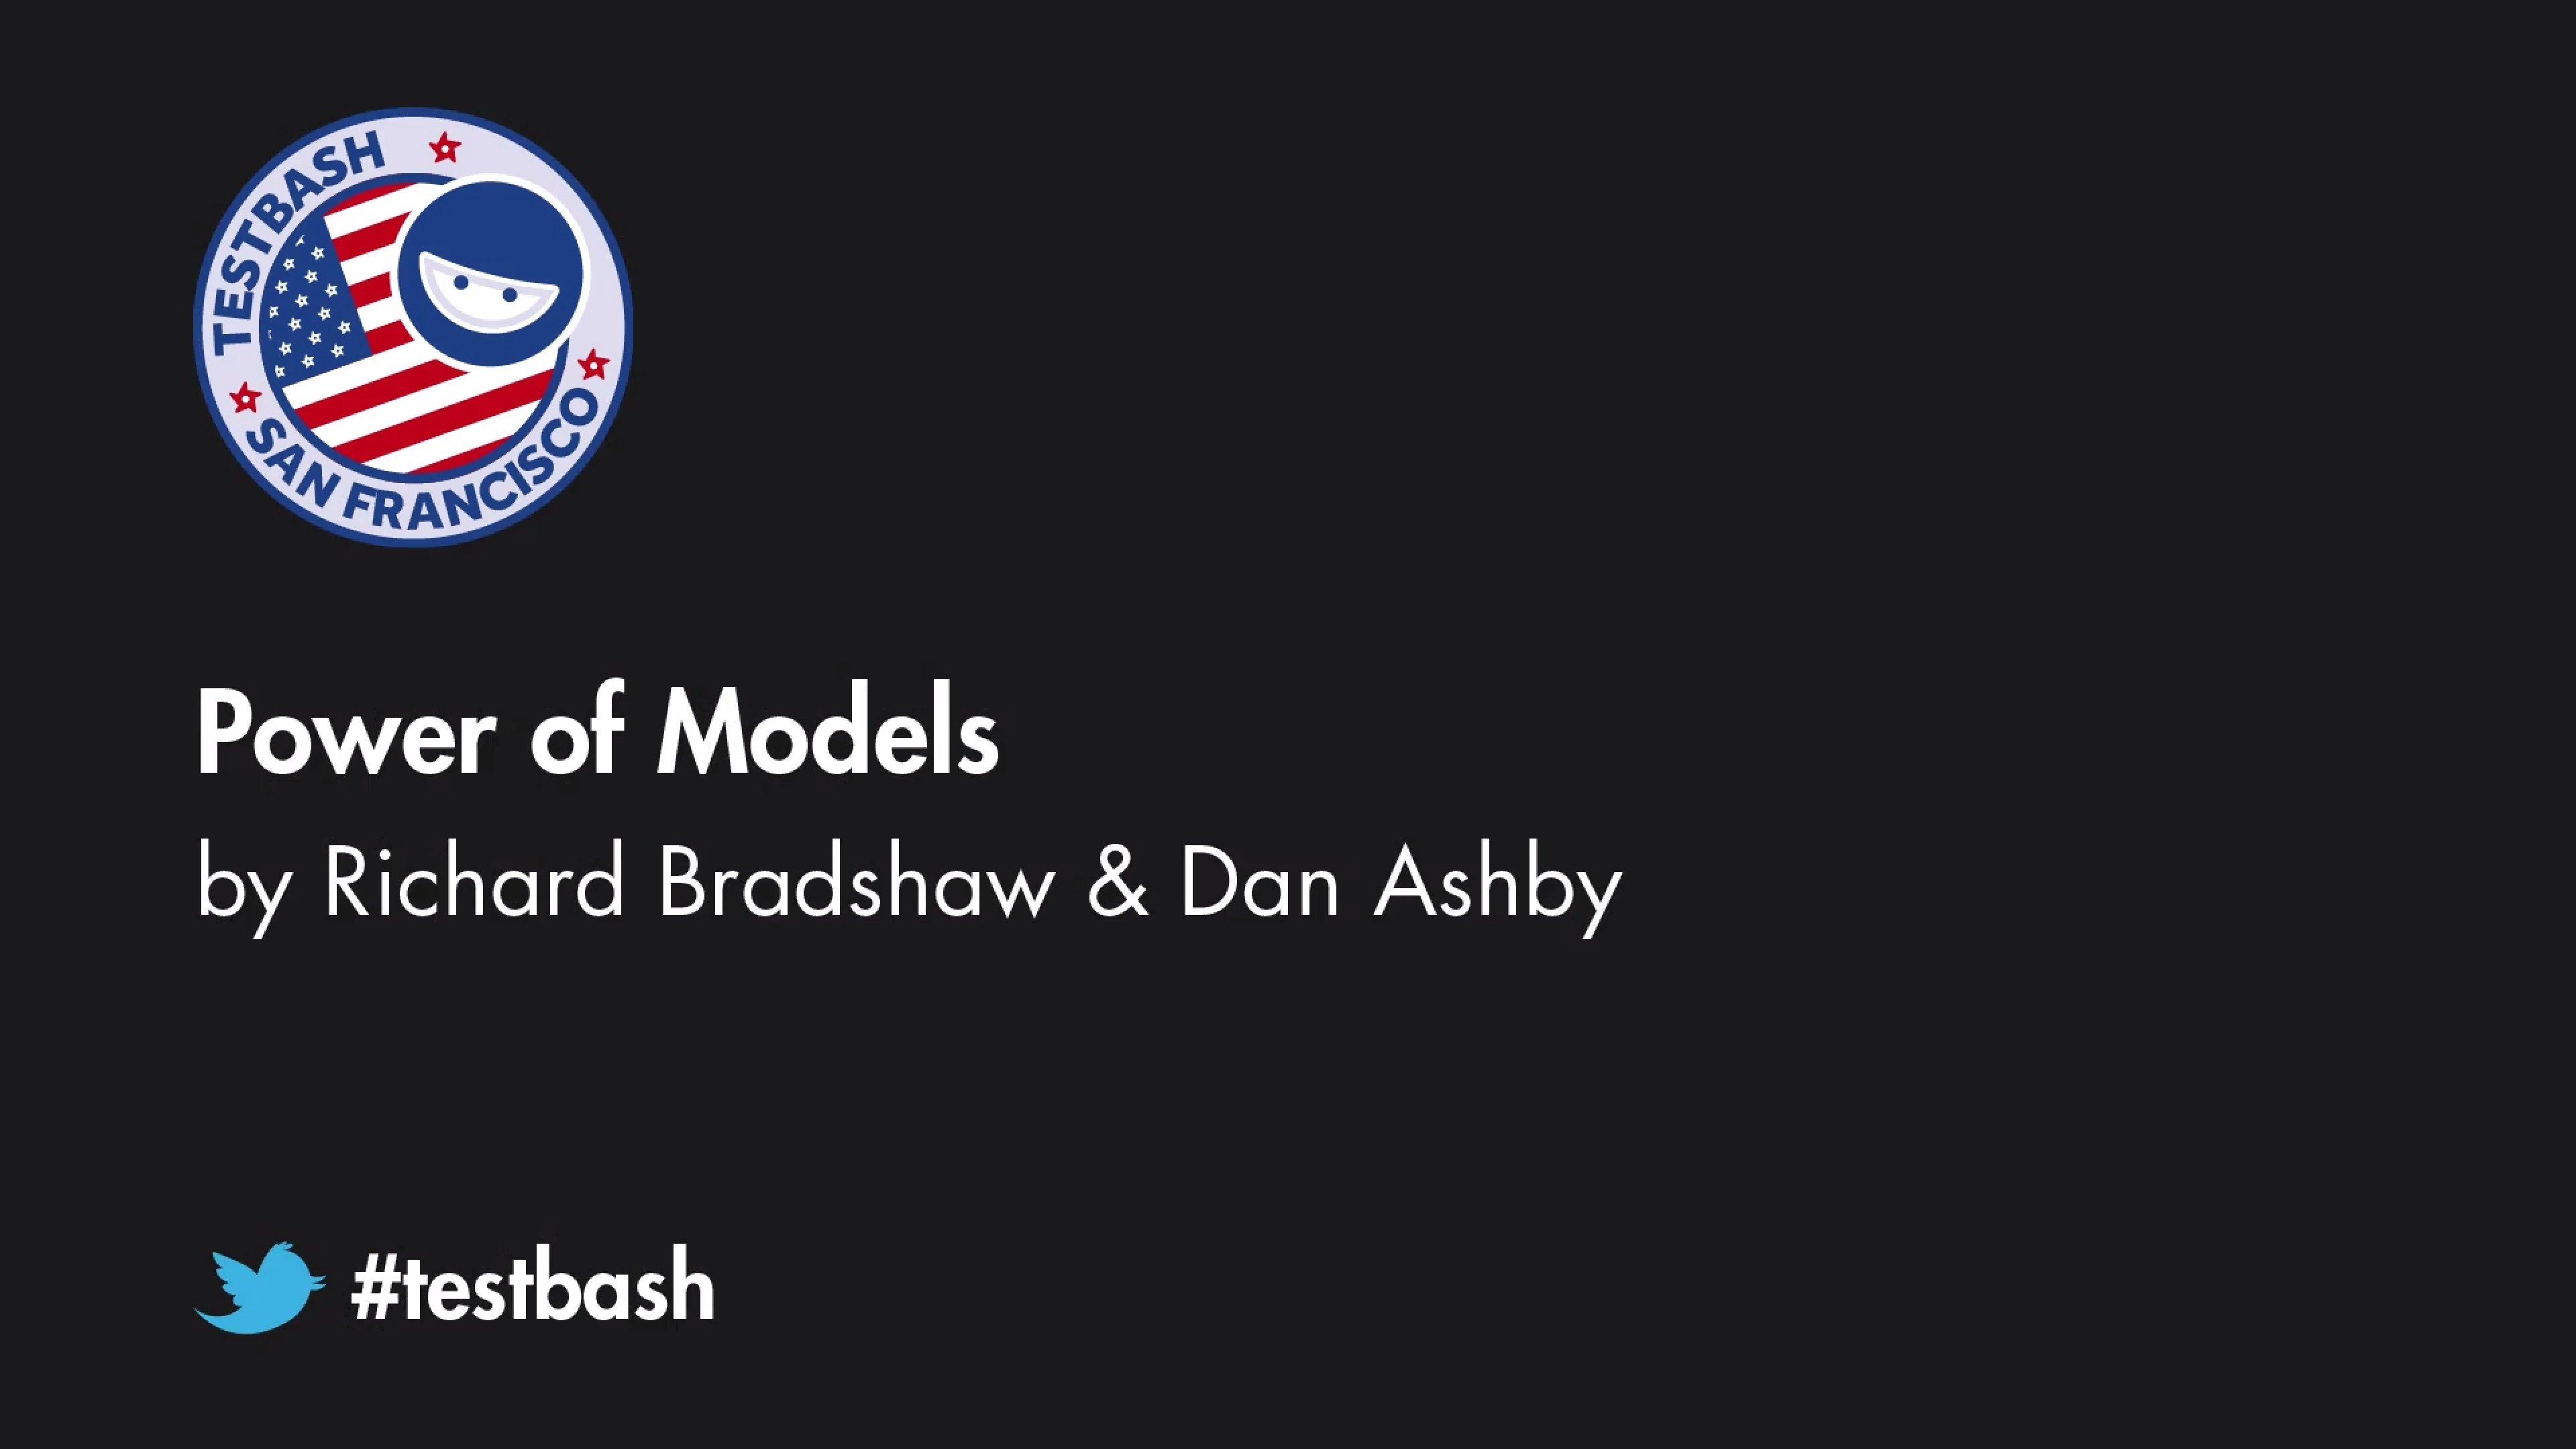 Power of Models - Dan Ashby & Richard Bradshaw